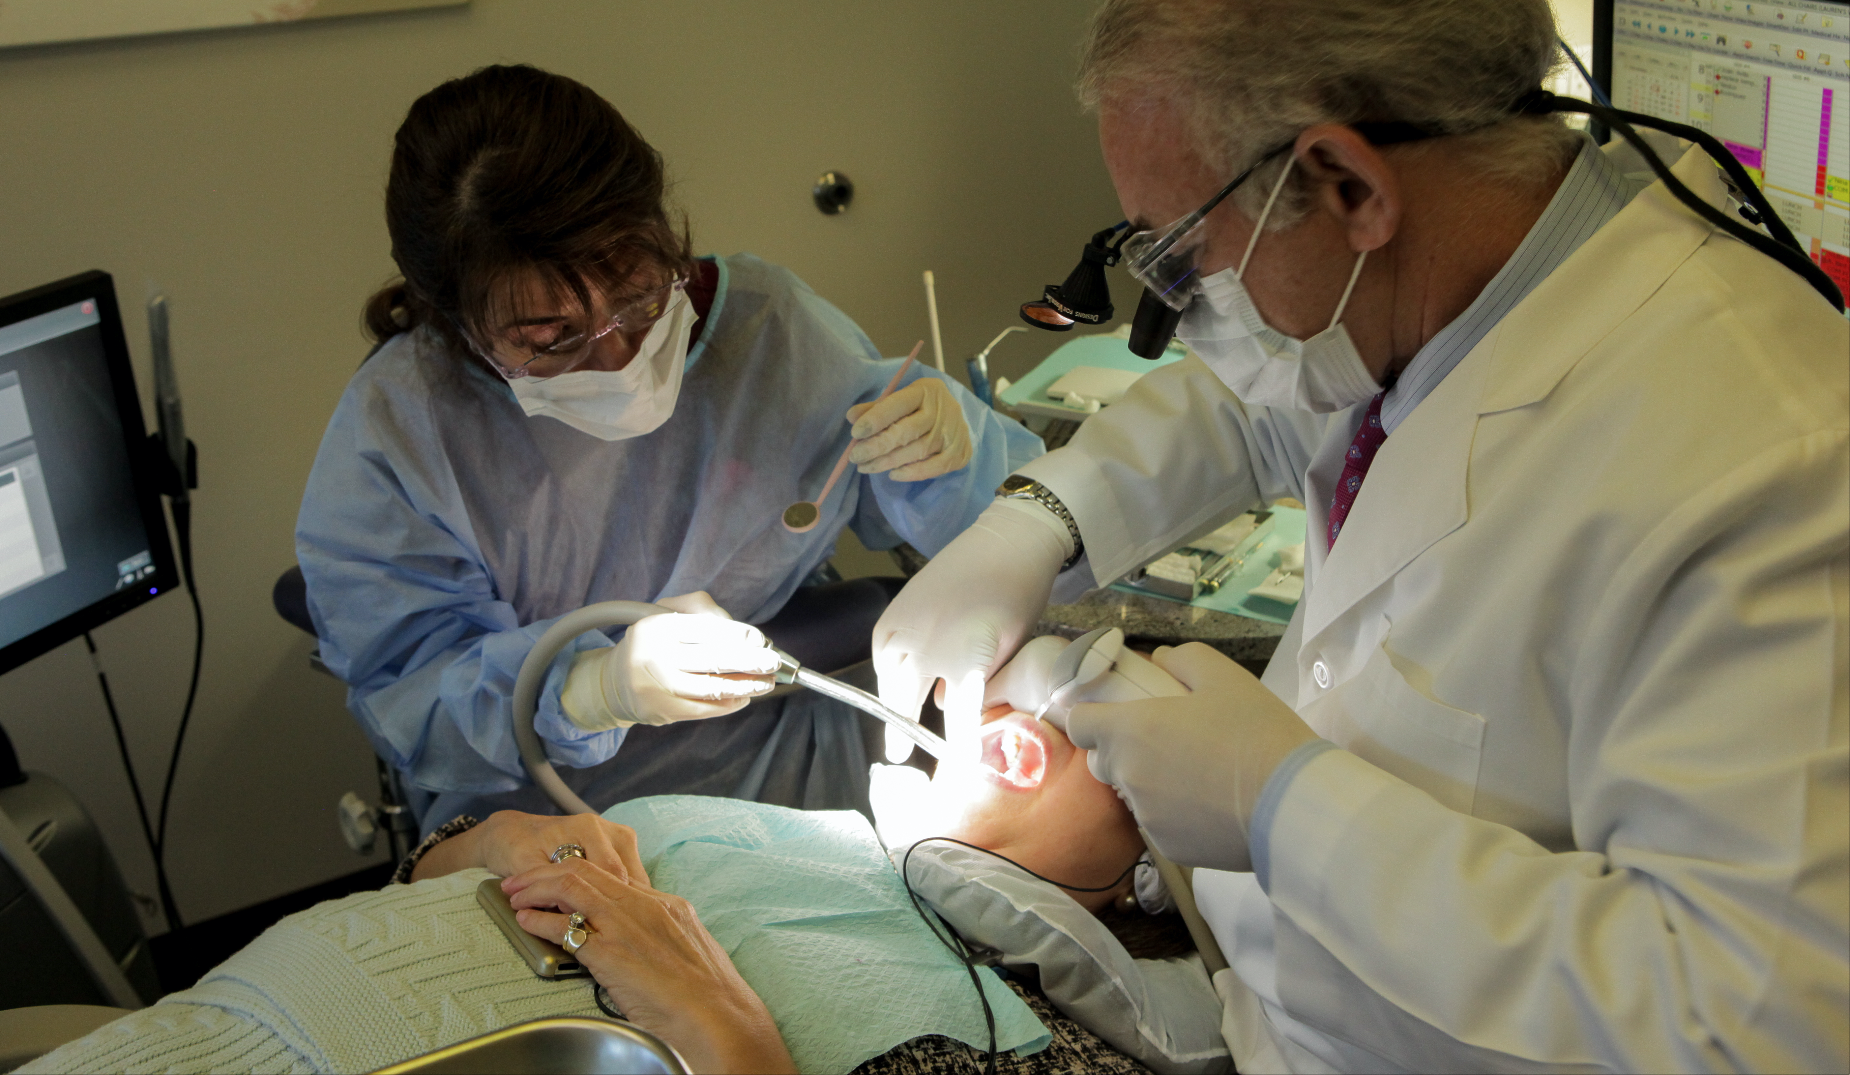 General Dentistry Services in Coral Gables, FL